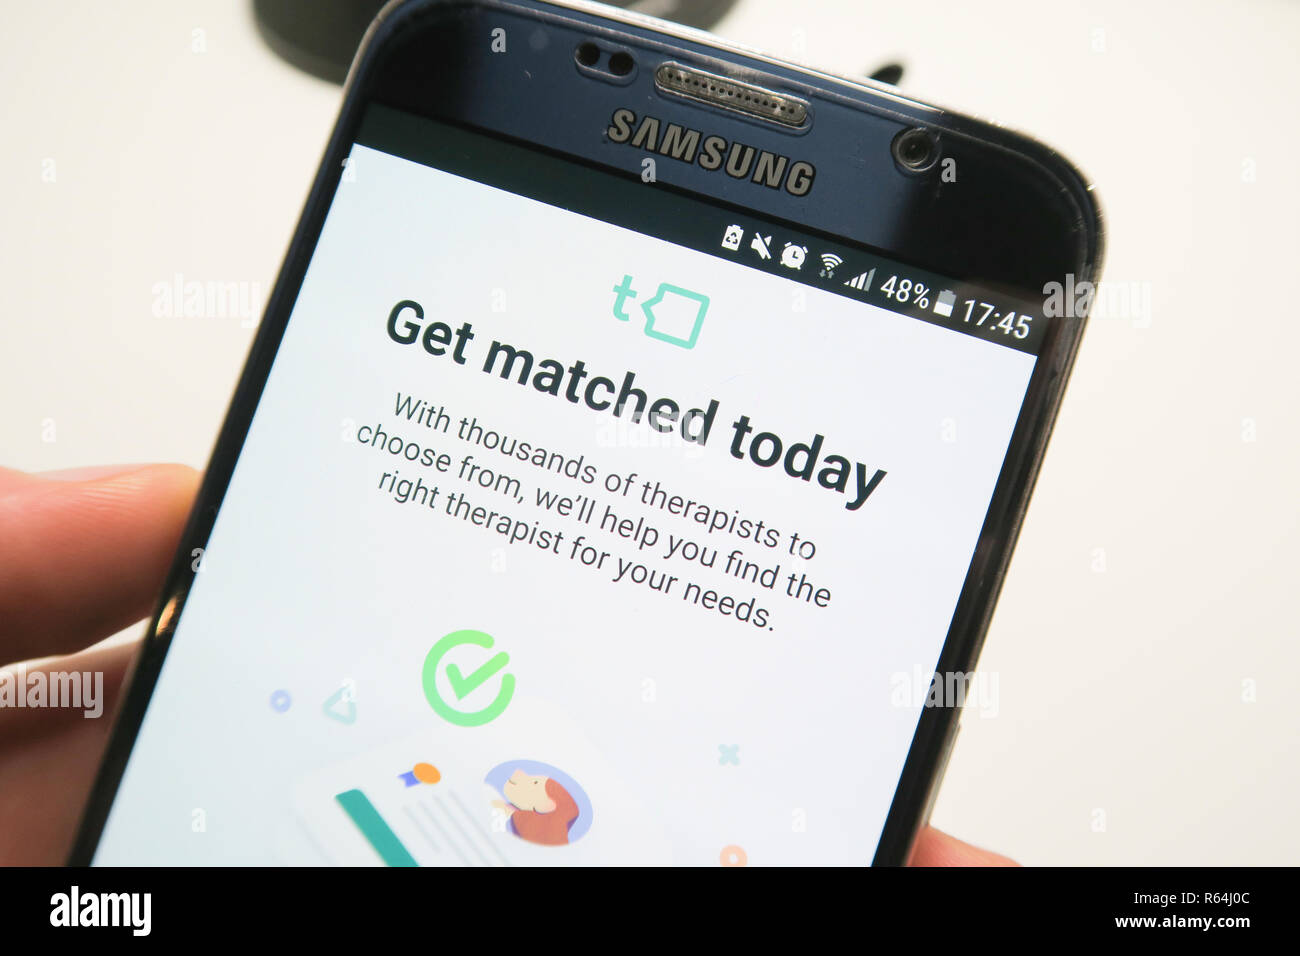 Image of the Talkspace app on a smartphone , get matched today - Stock Image